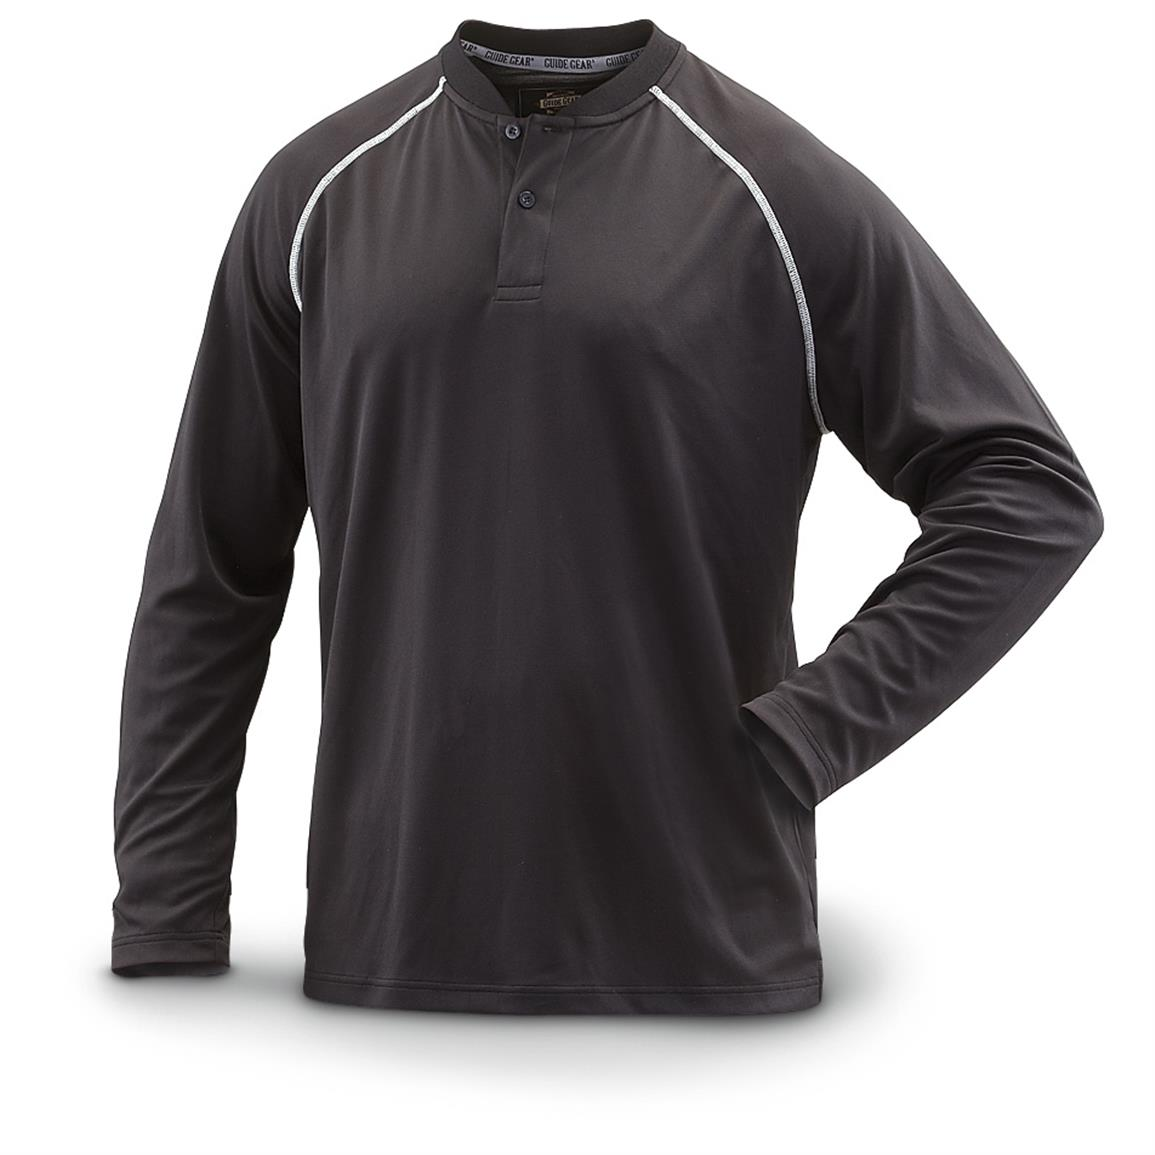 Guide Gear Men's Performance Long-Sleeve Henley Shirt, Black